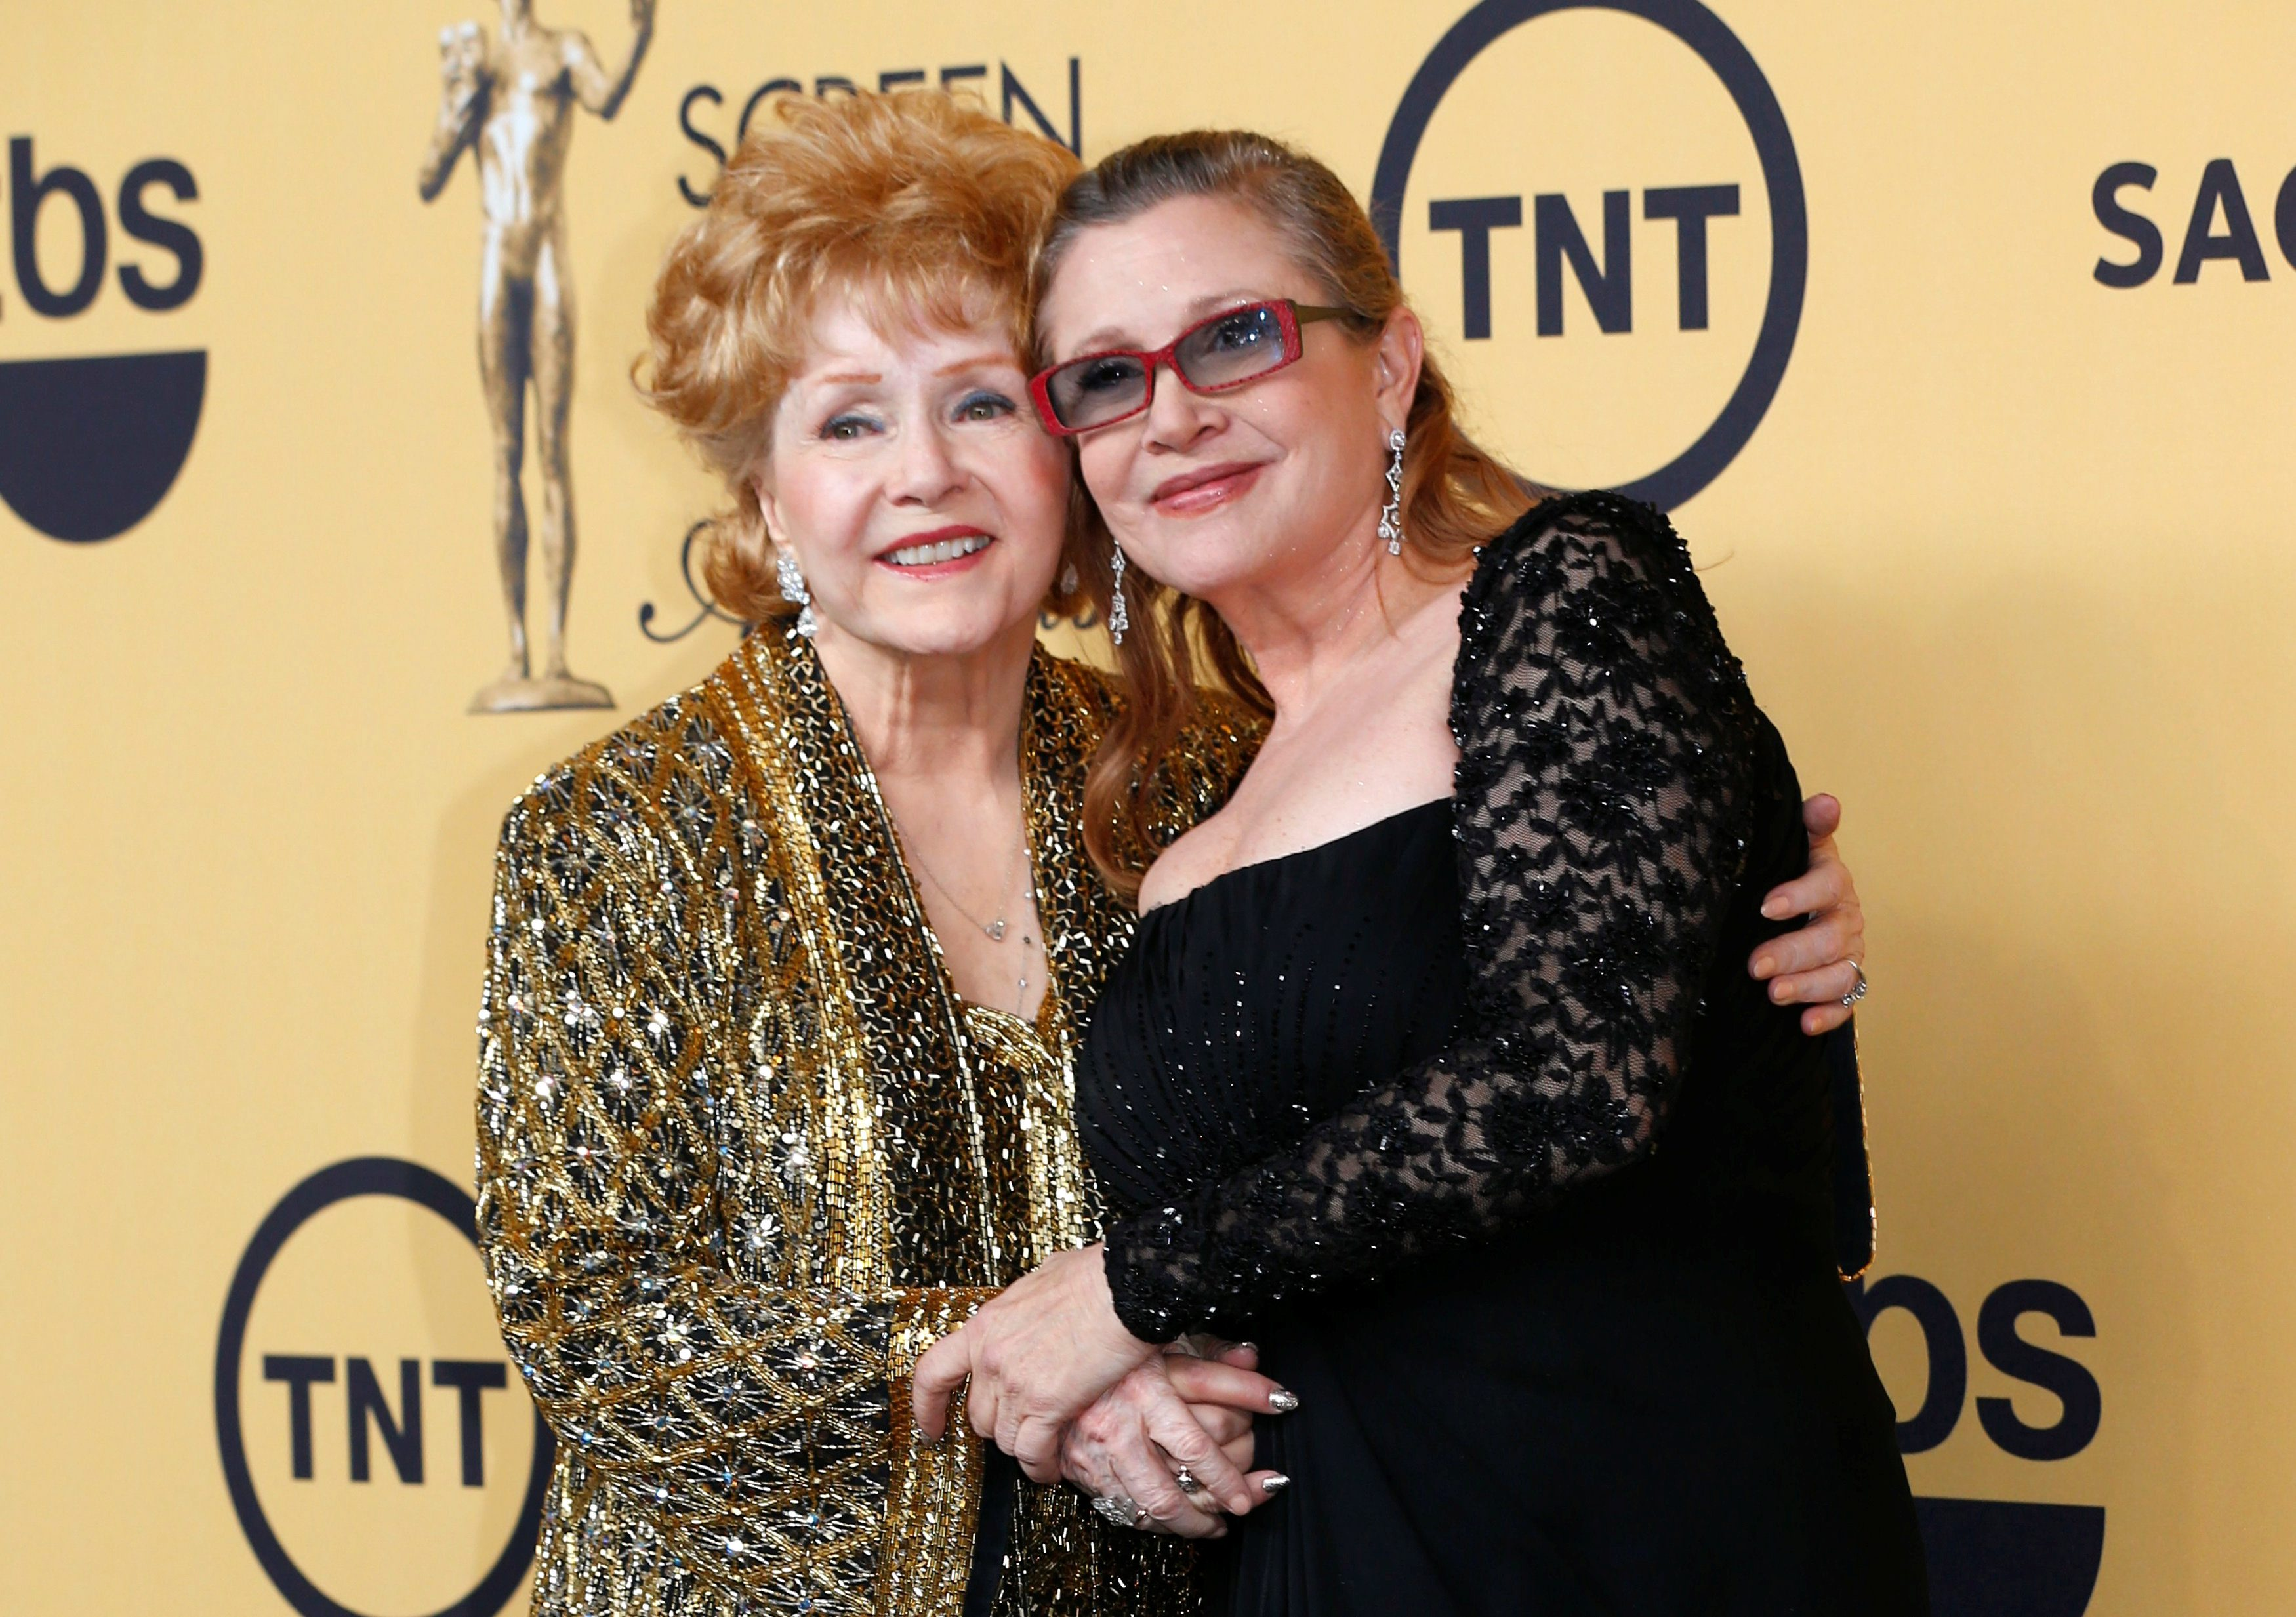 FILE PHOTO: Actress Debbie Reynolds poses with her daughter actress Carrie Fisher backstage after accepting her Lifetime Achievement award at the 21st annual Screen Actors Guild Awards in Los Angeles, California January 25, 2015.  REUTERS/Mike Blake/File Photo